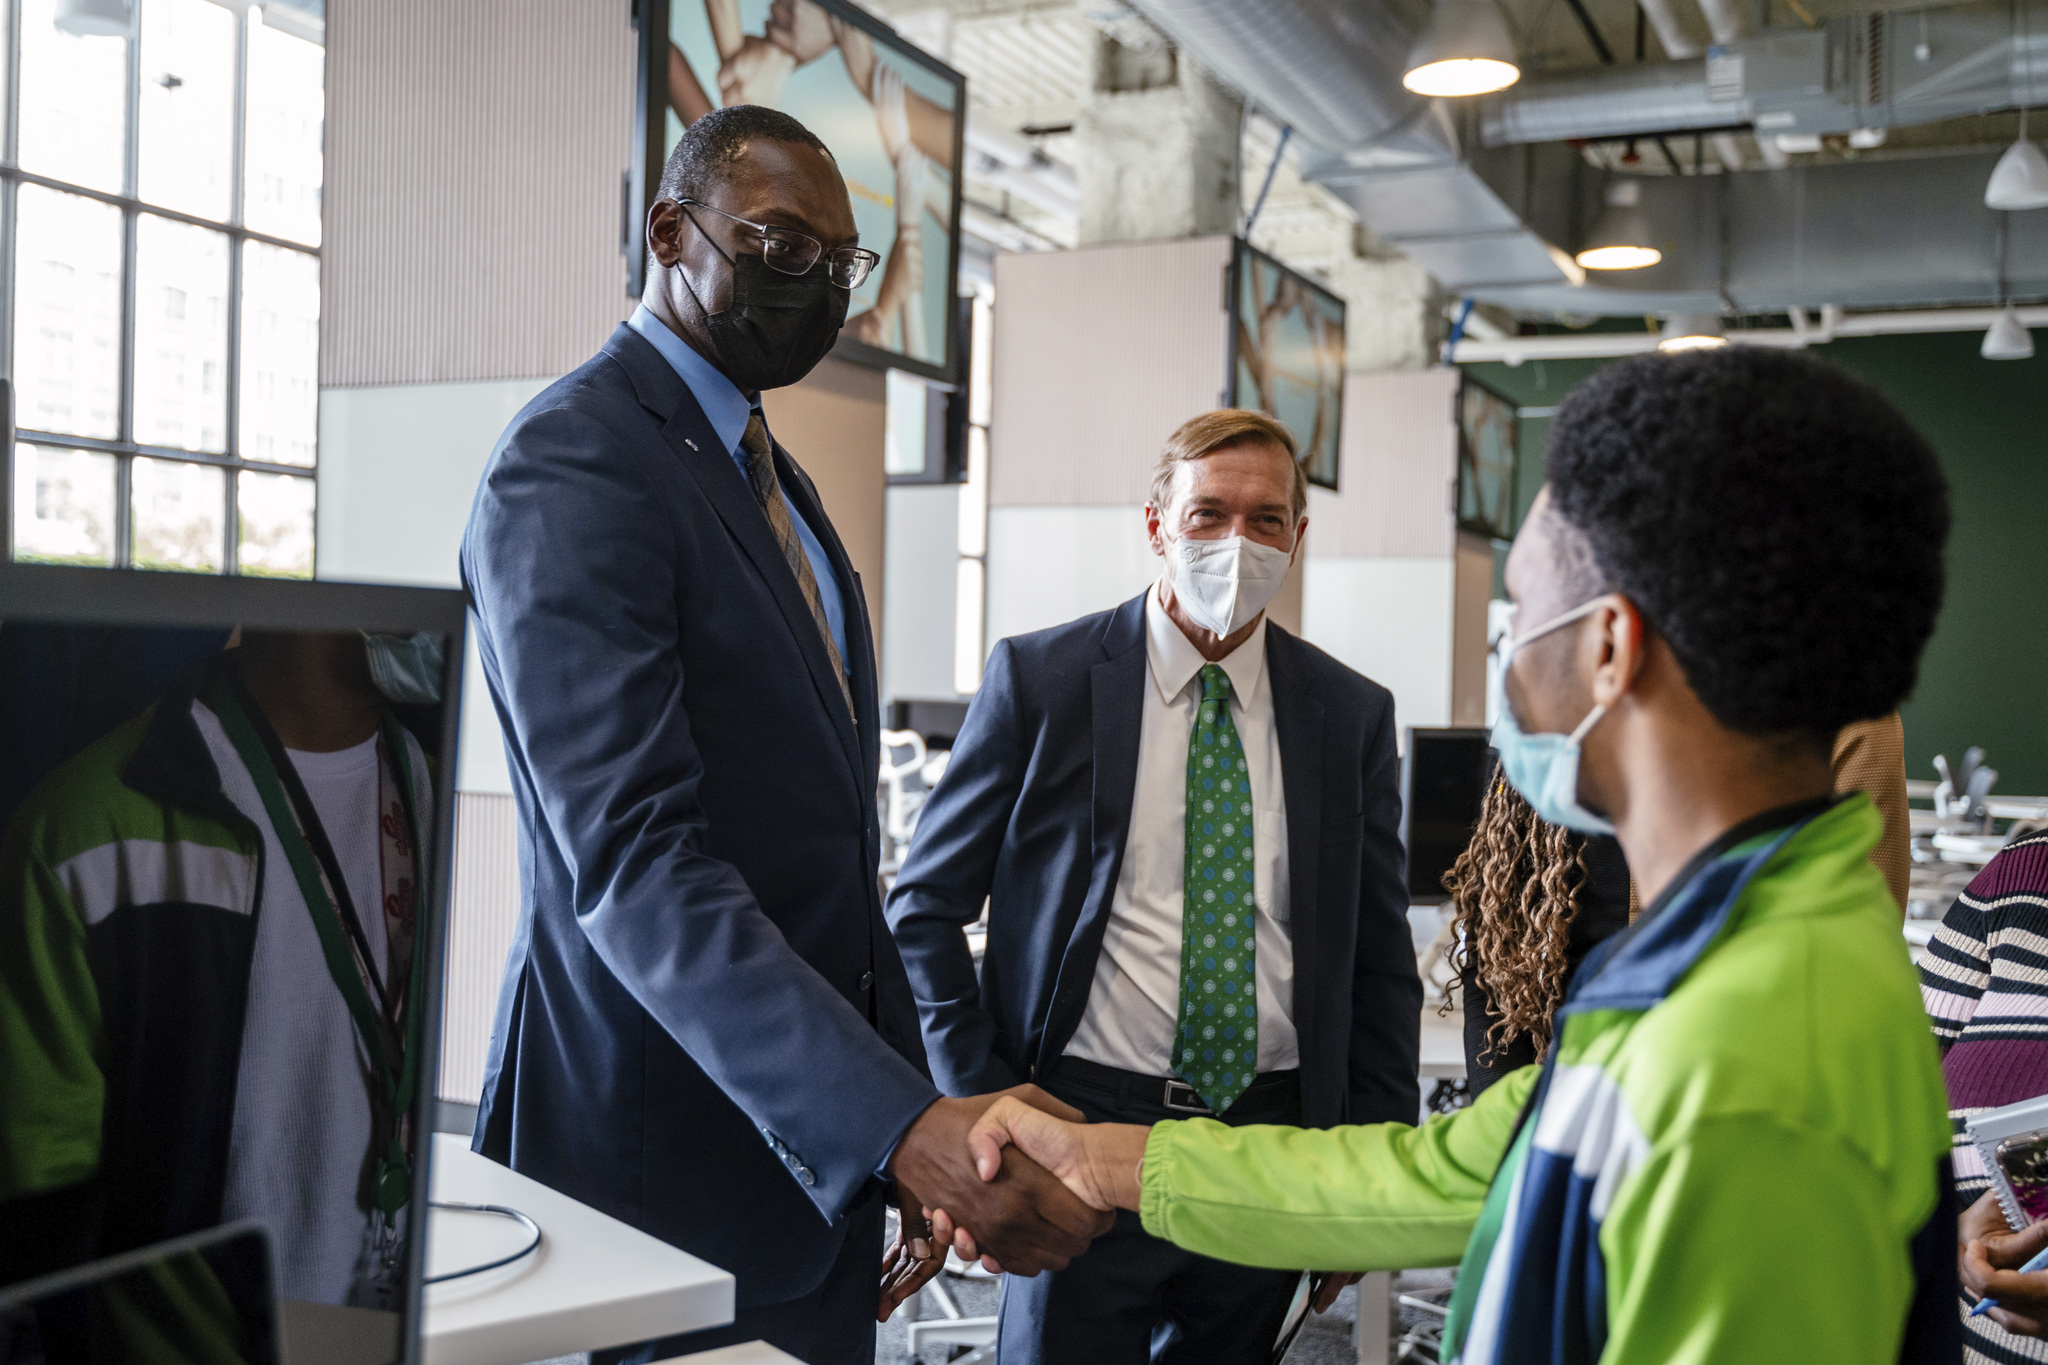 Michigan Lieutenant Governor Garlin Gilchrist and MSU President Samuel L. Stanley, Jr., MD visited Apple Developer Academy to explore space, connect with students, and learn more about the iOS program ( photo credit: Apple).